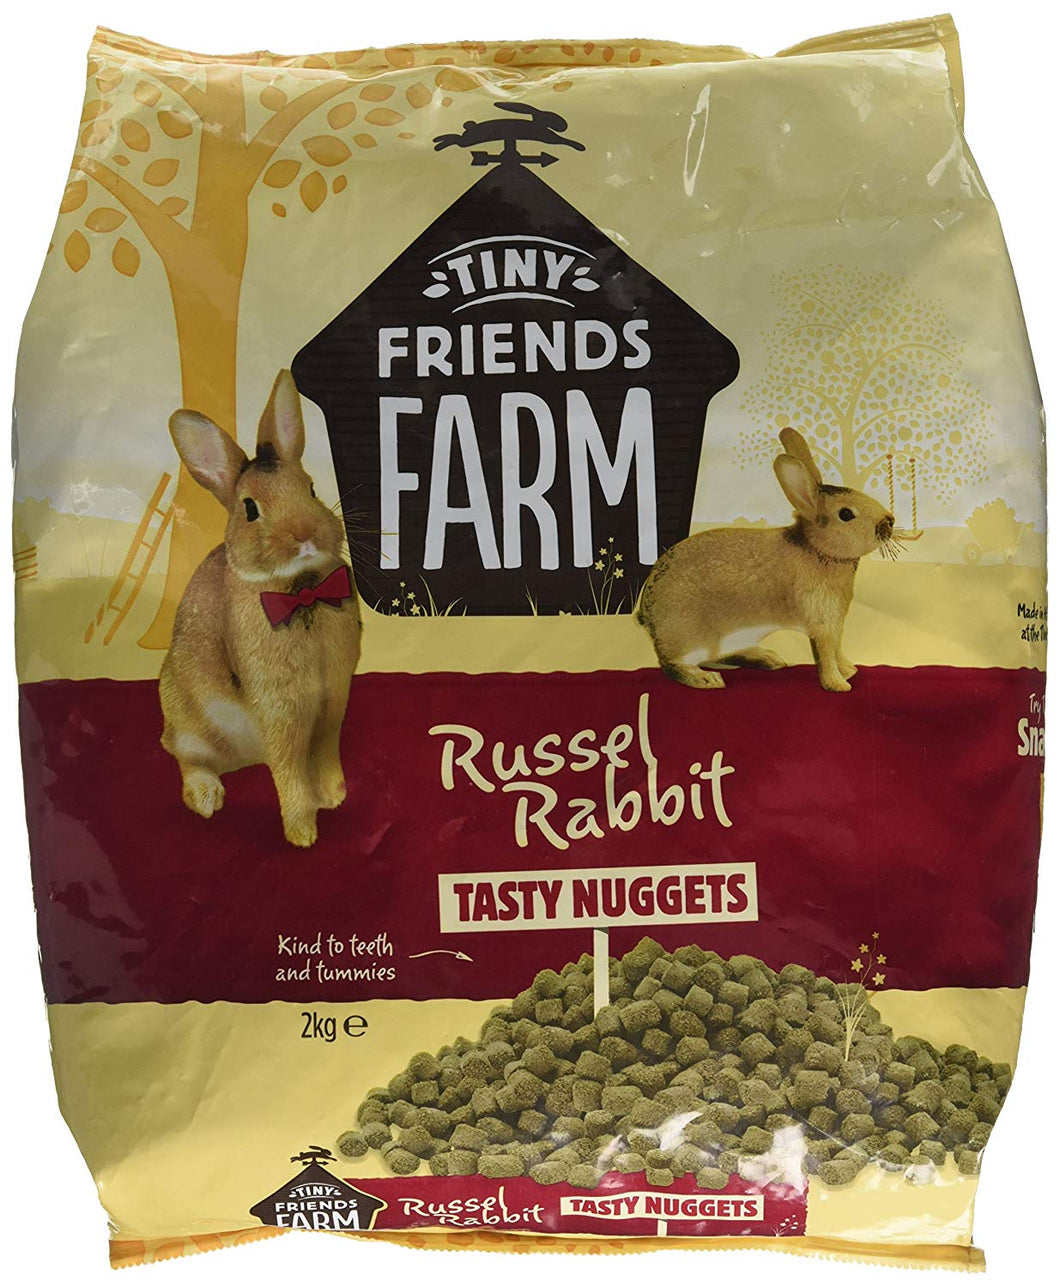 Supreme Tiny Friends Farm Russel Rabbit Tasty Nuggets Nutrition Food, 2 Kg